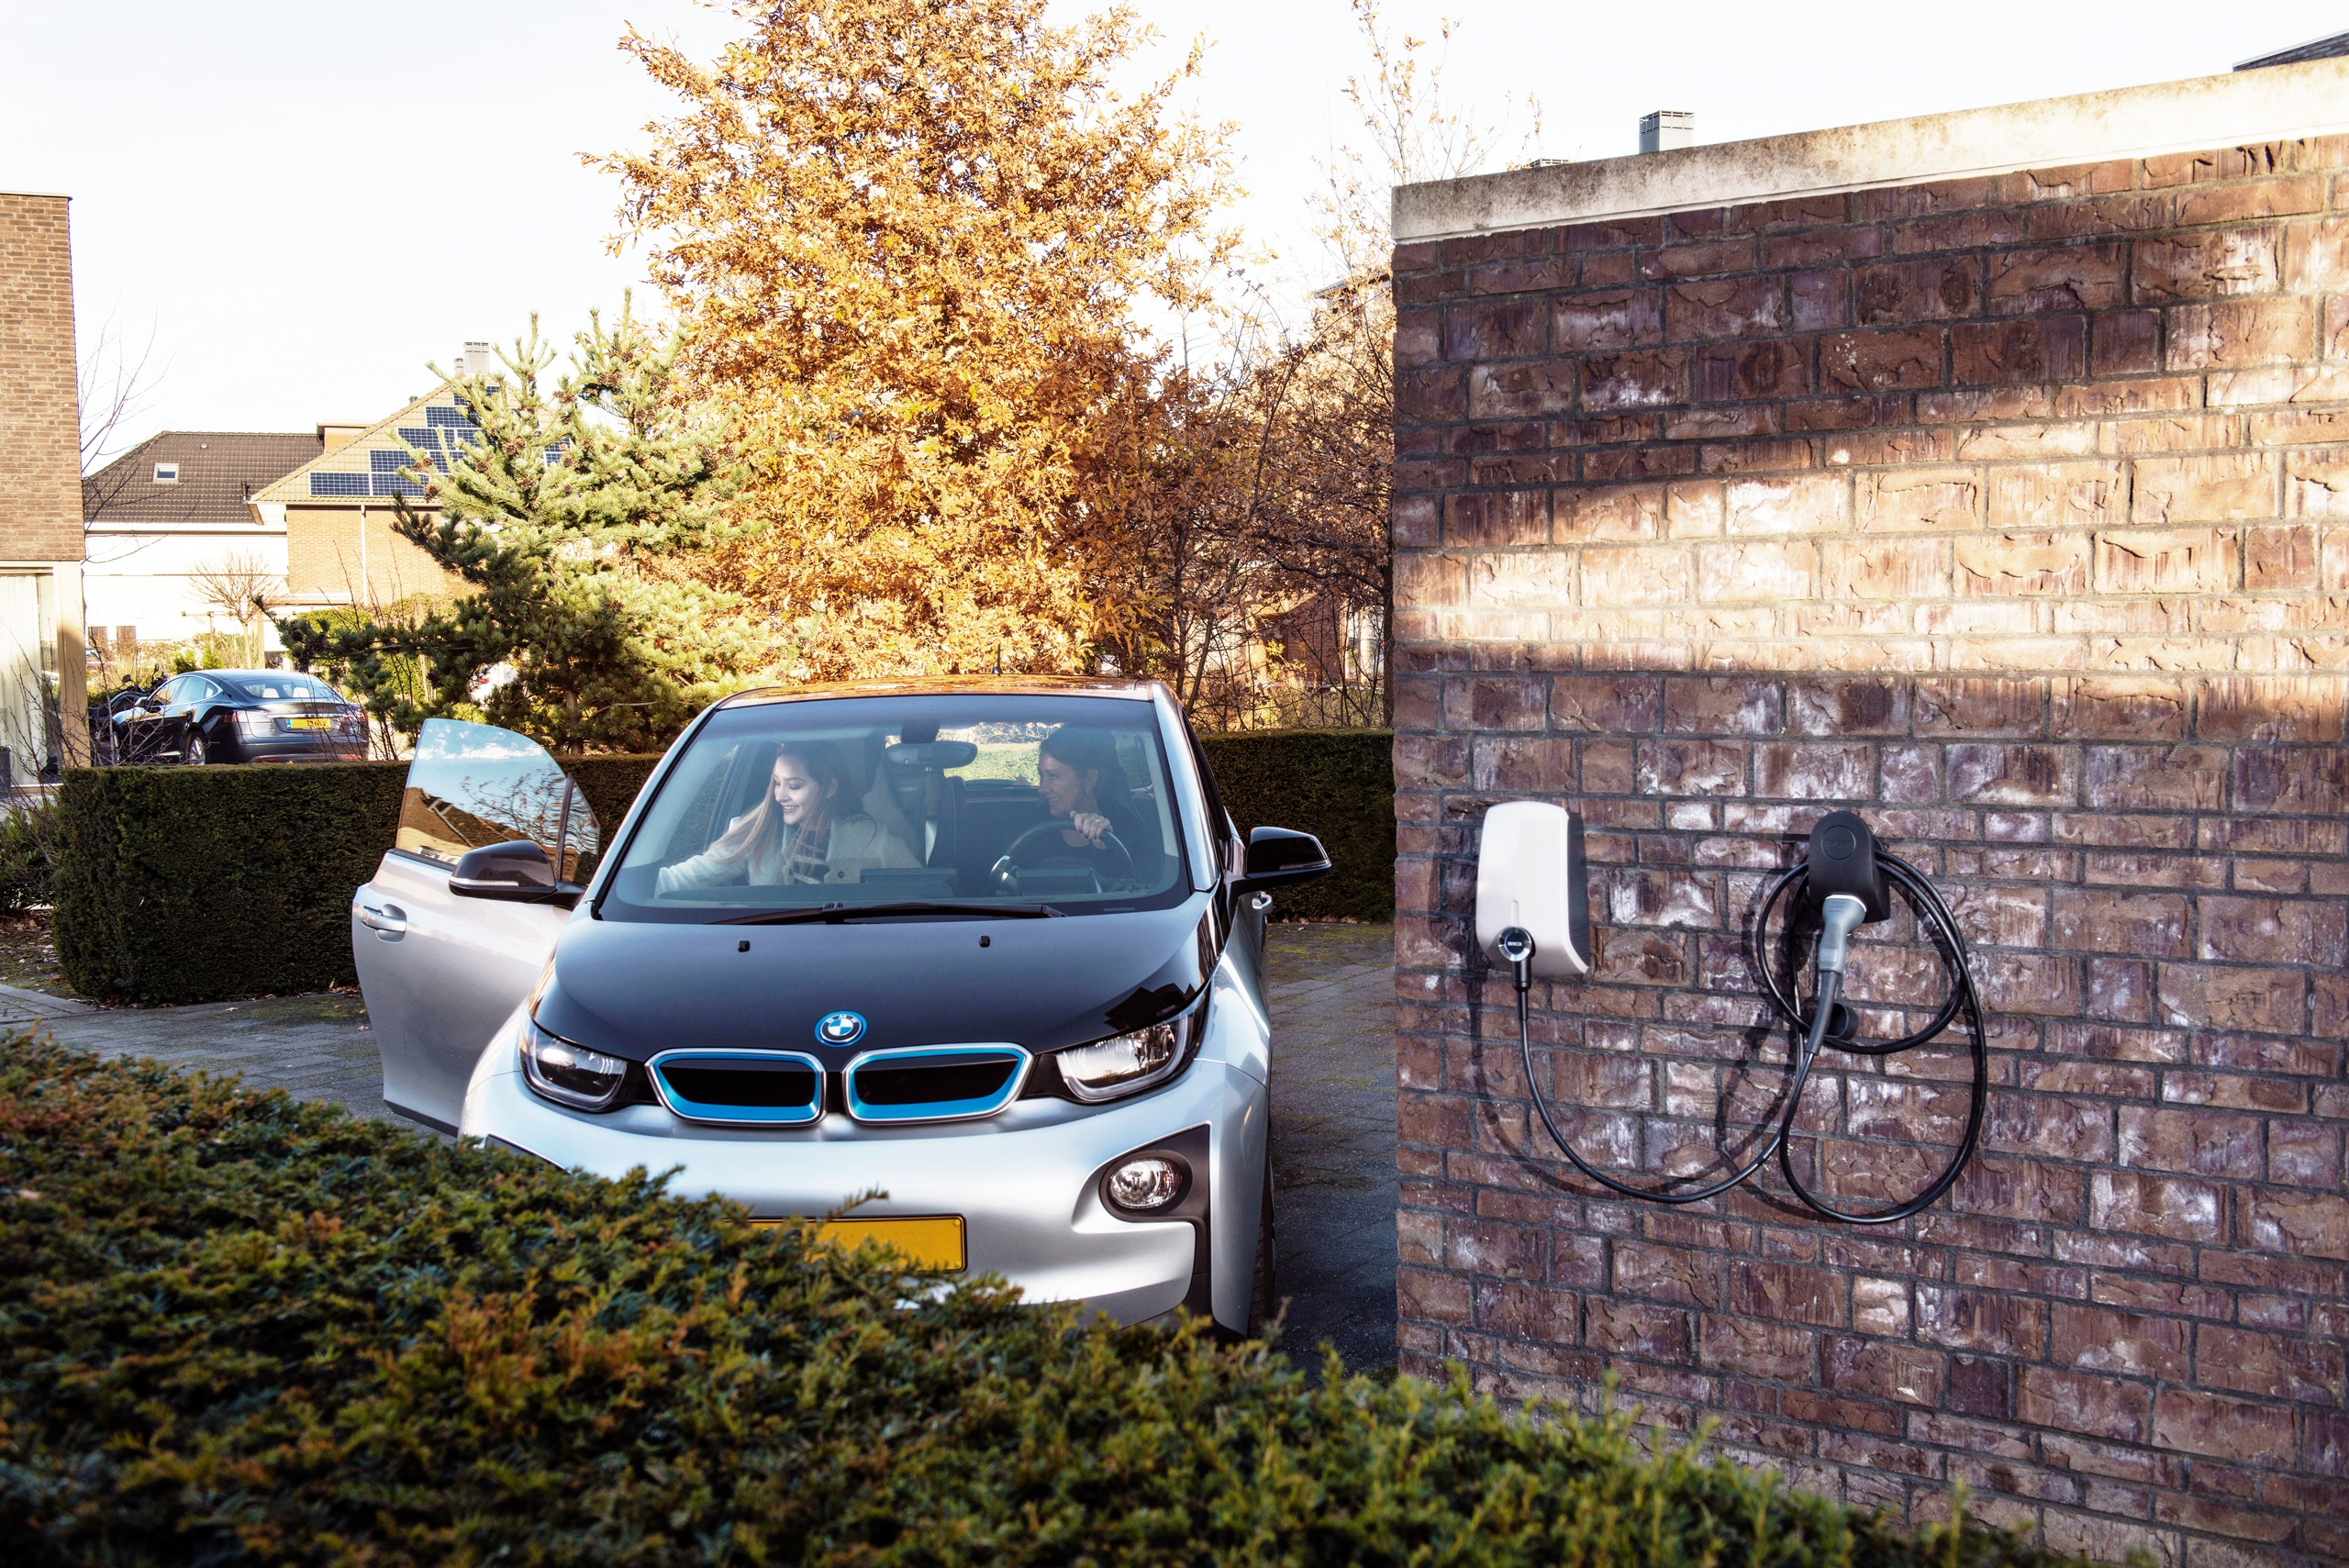 An electric BMW parking at a residential dwelling in the leafy suburbs next to a professionally installed EV charging station.